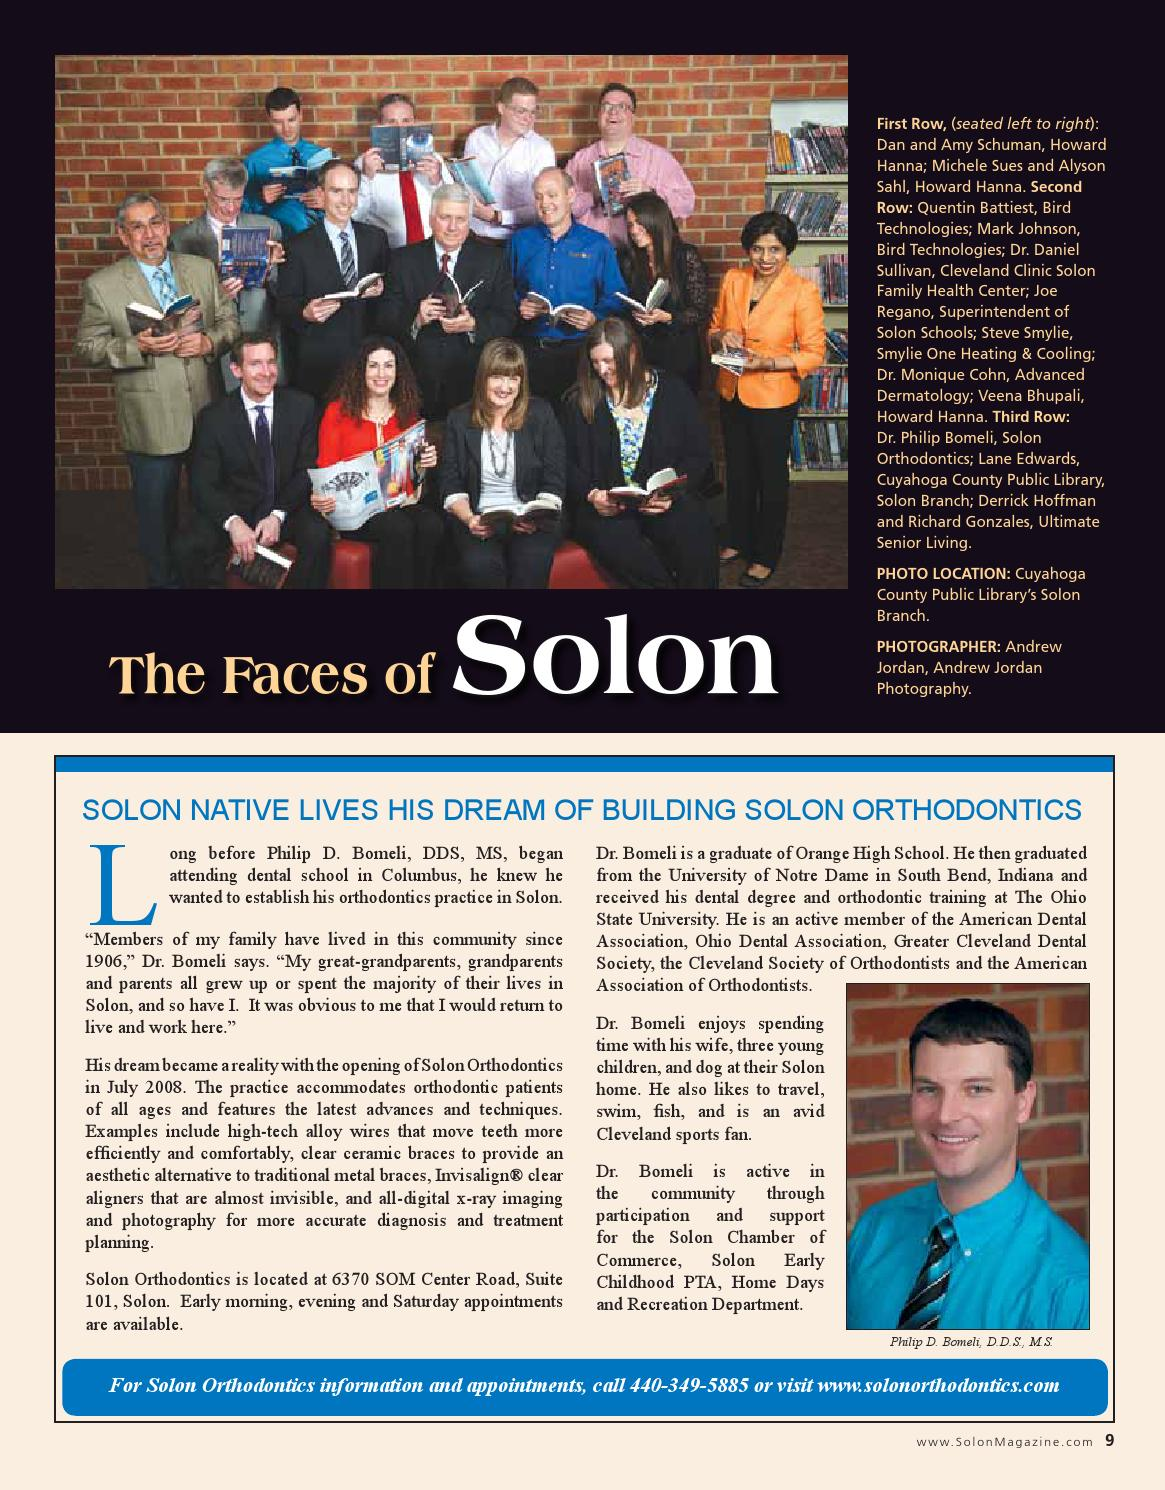 Solon Ohio Community Guide by Image Builders Marketing - issuu